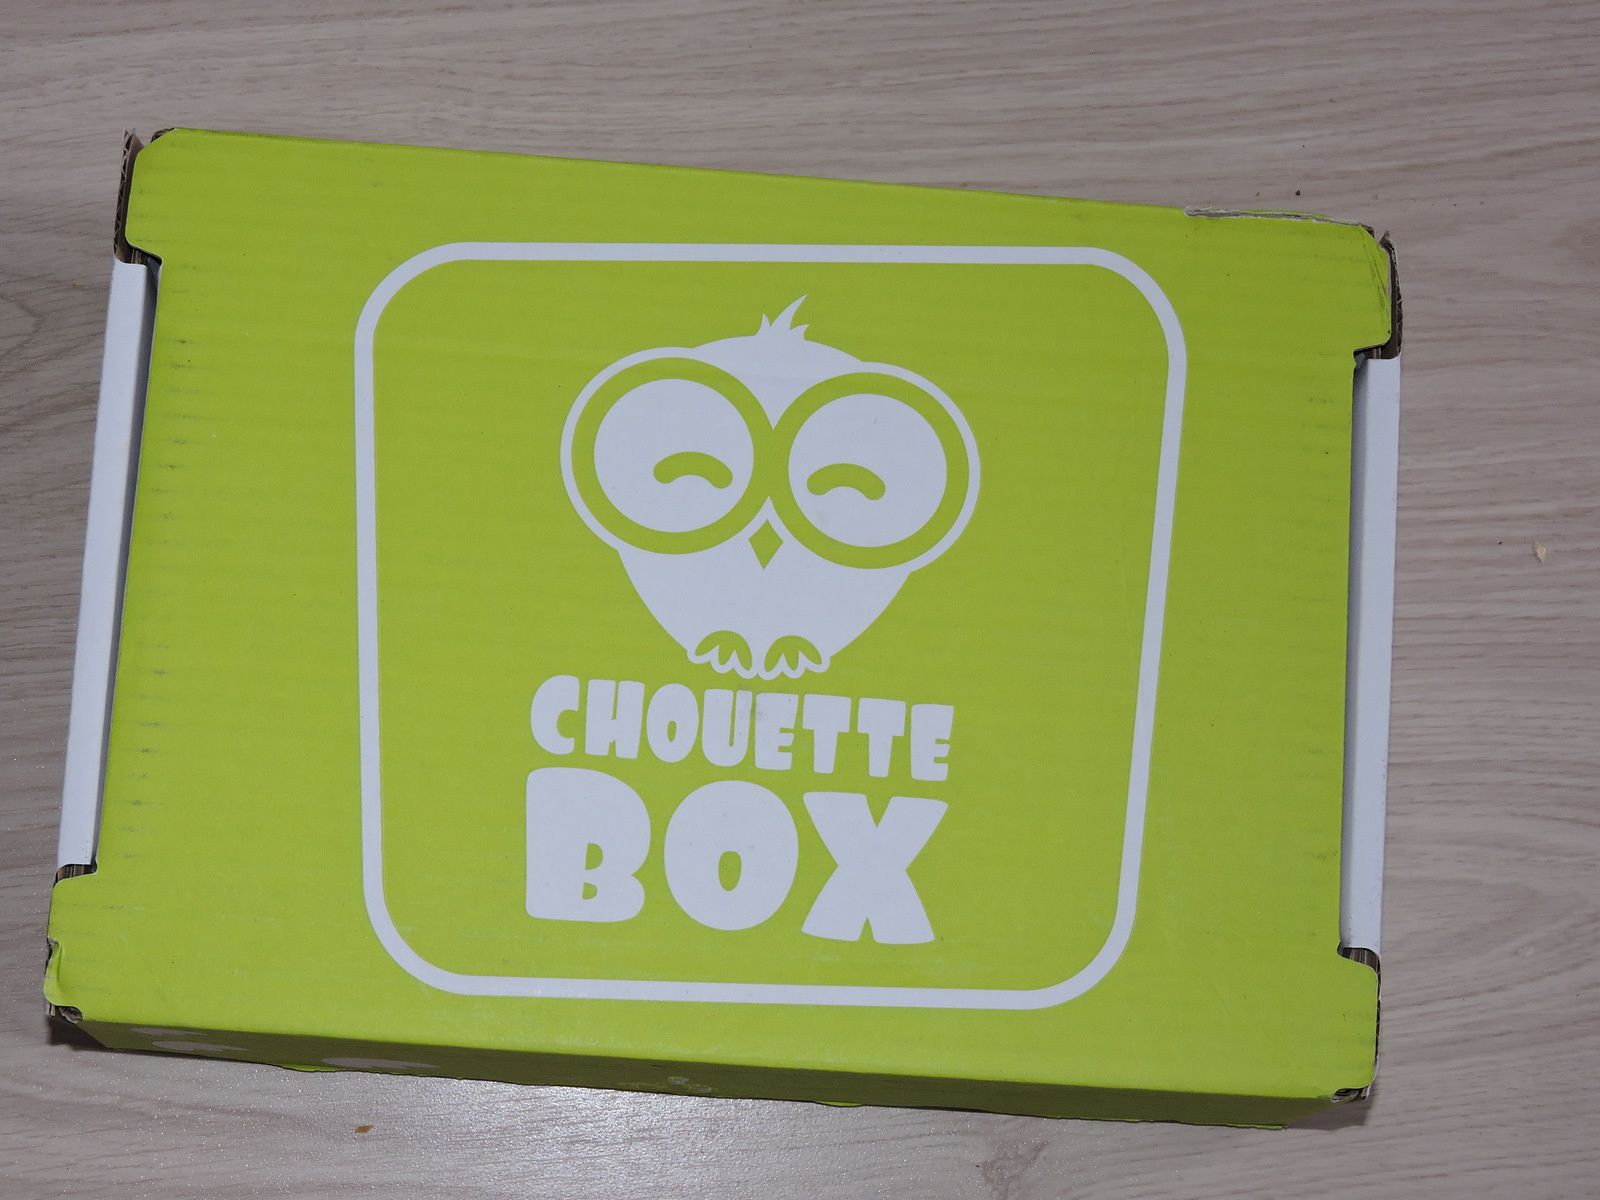 Chouette box octobre